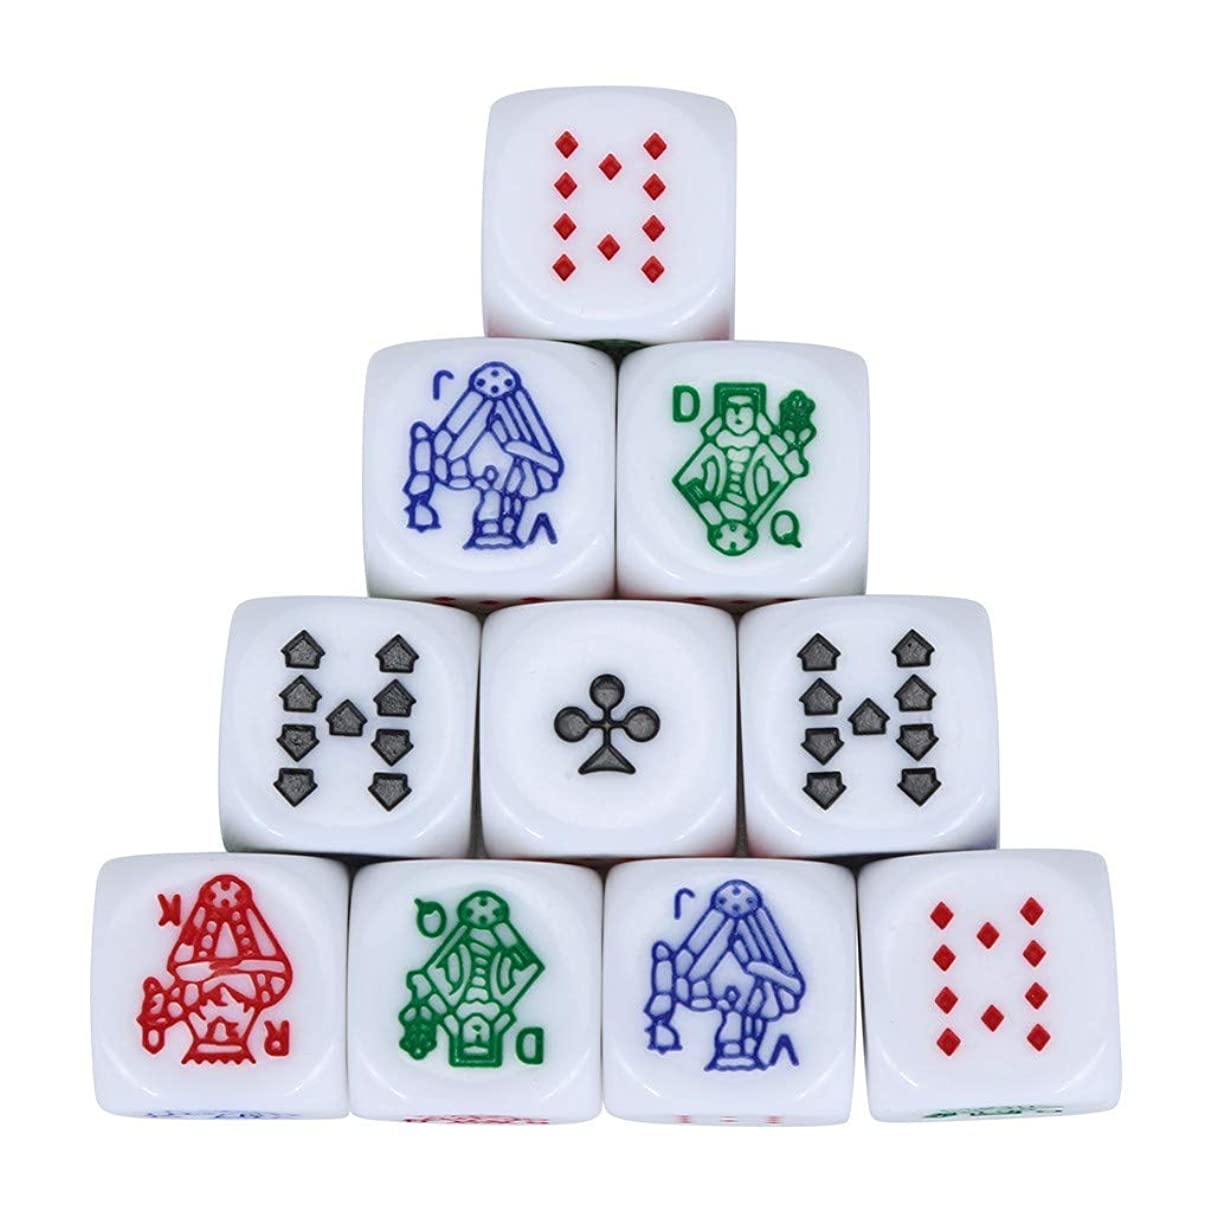 Dice Polyhedral Multi 10pcs/Set for Game Hexagon Sided Acrylic Poker Dice